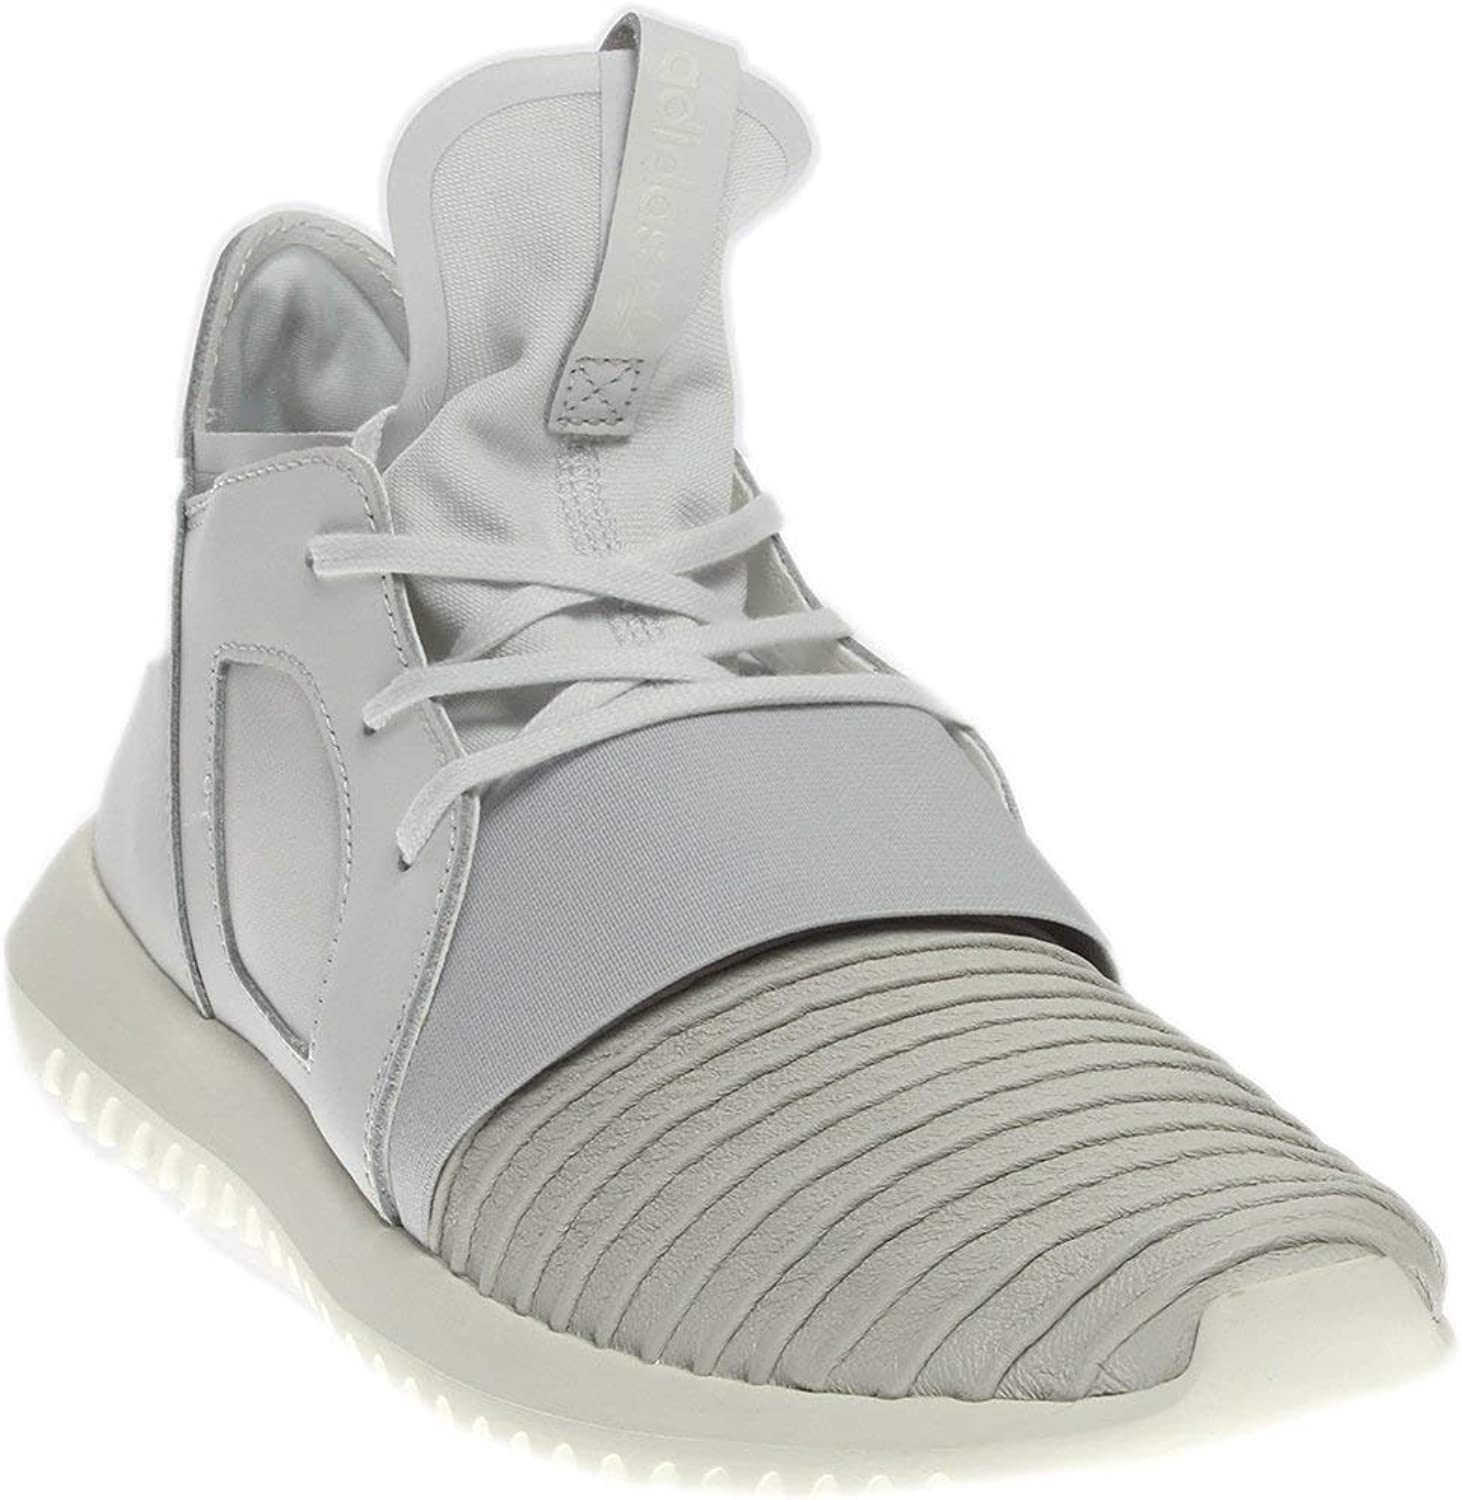 Adidas Womens Tubular Defiant Athletic & Sneakers White